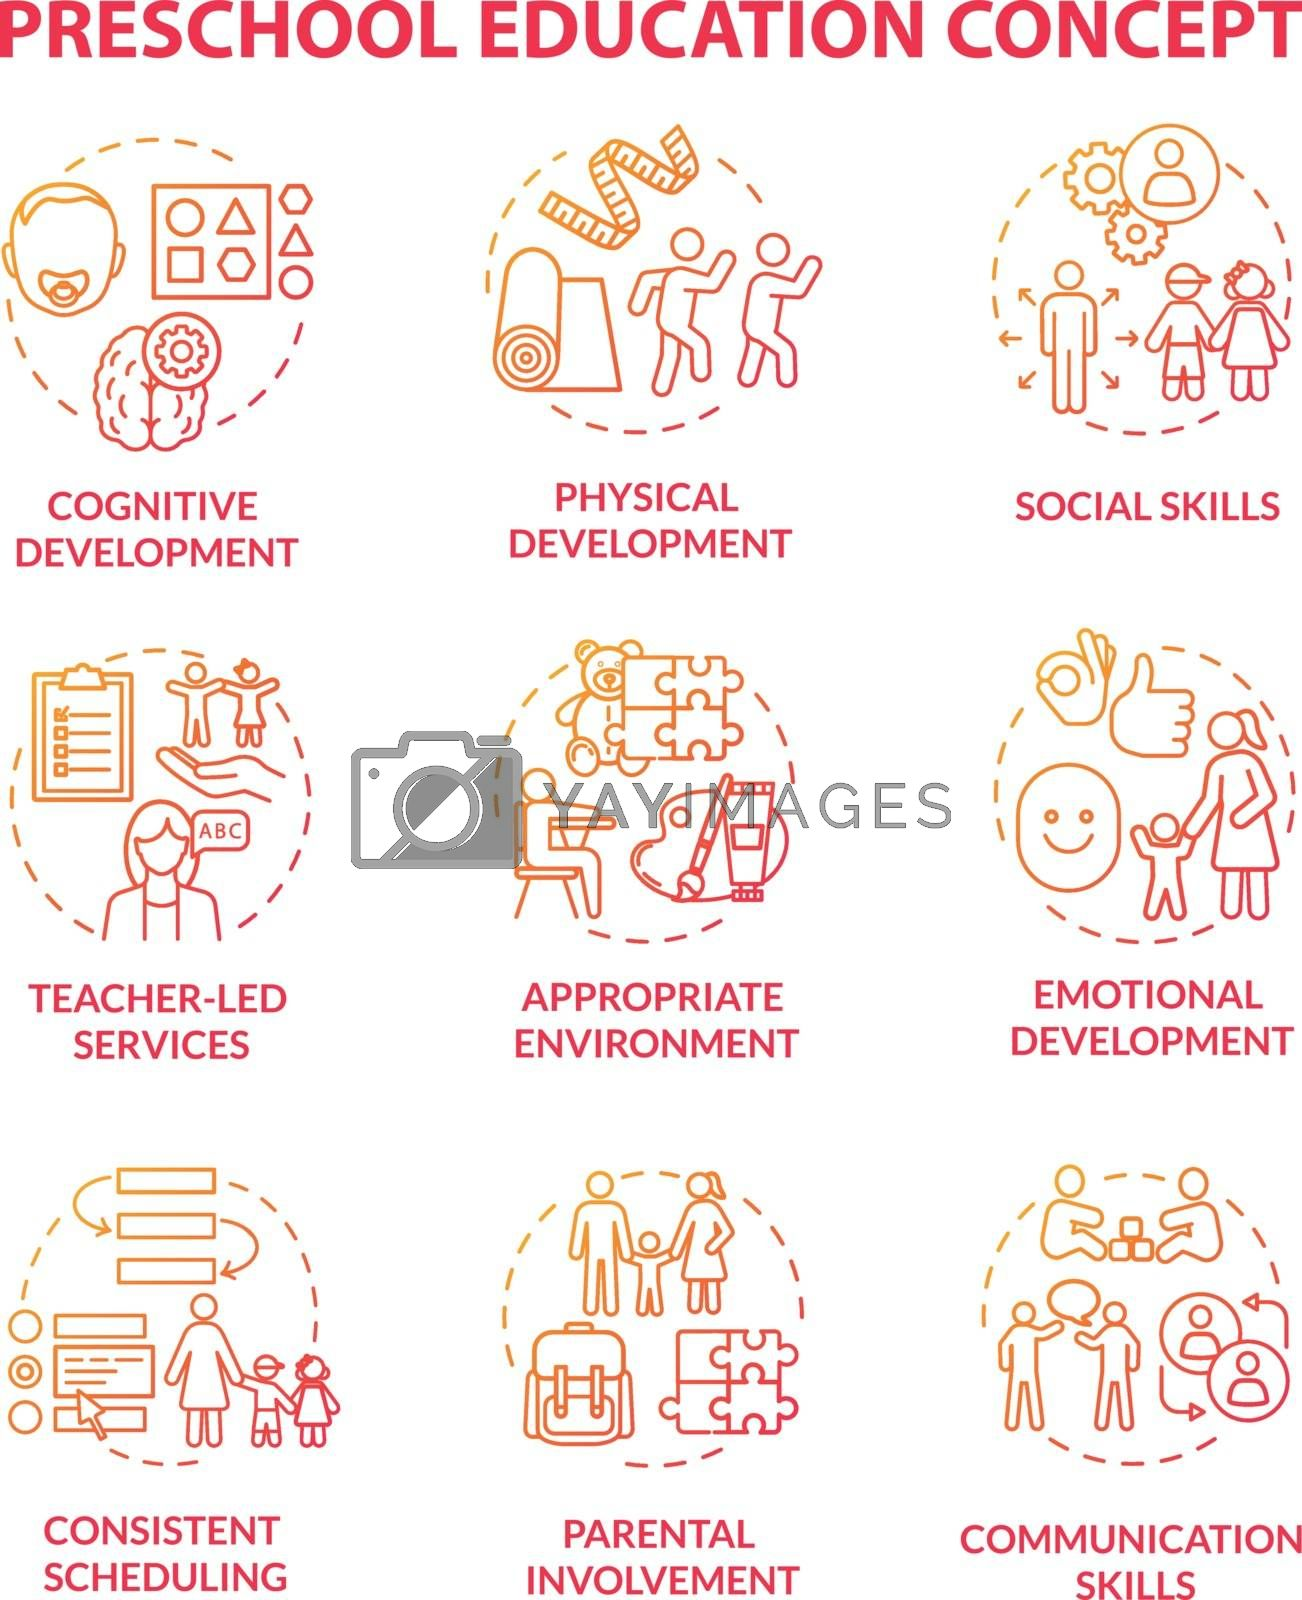 Toddlers preschool education concept icons set by bsd